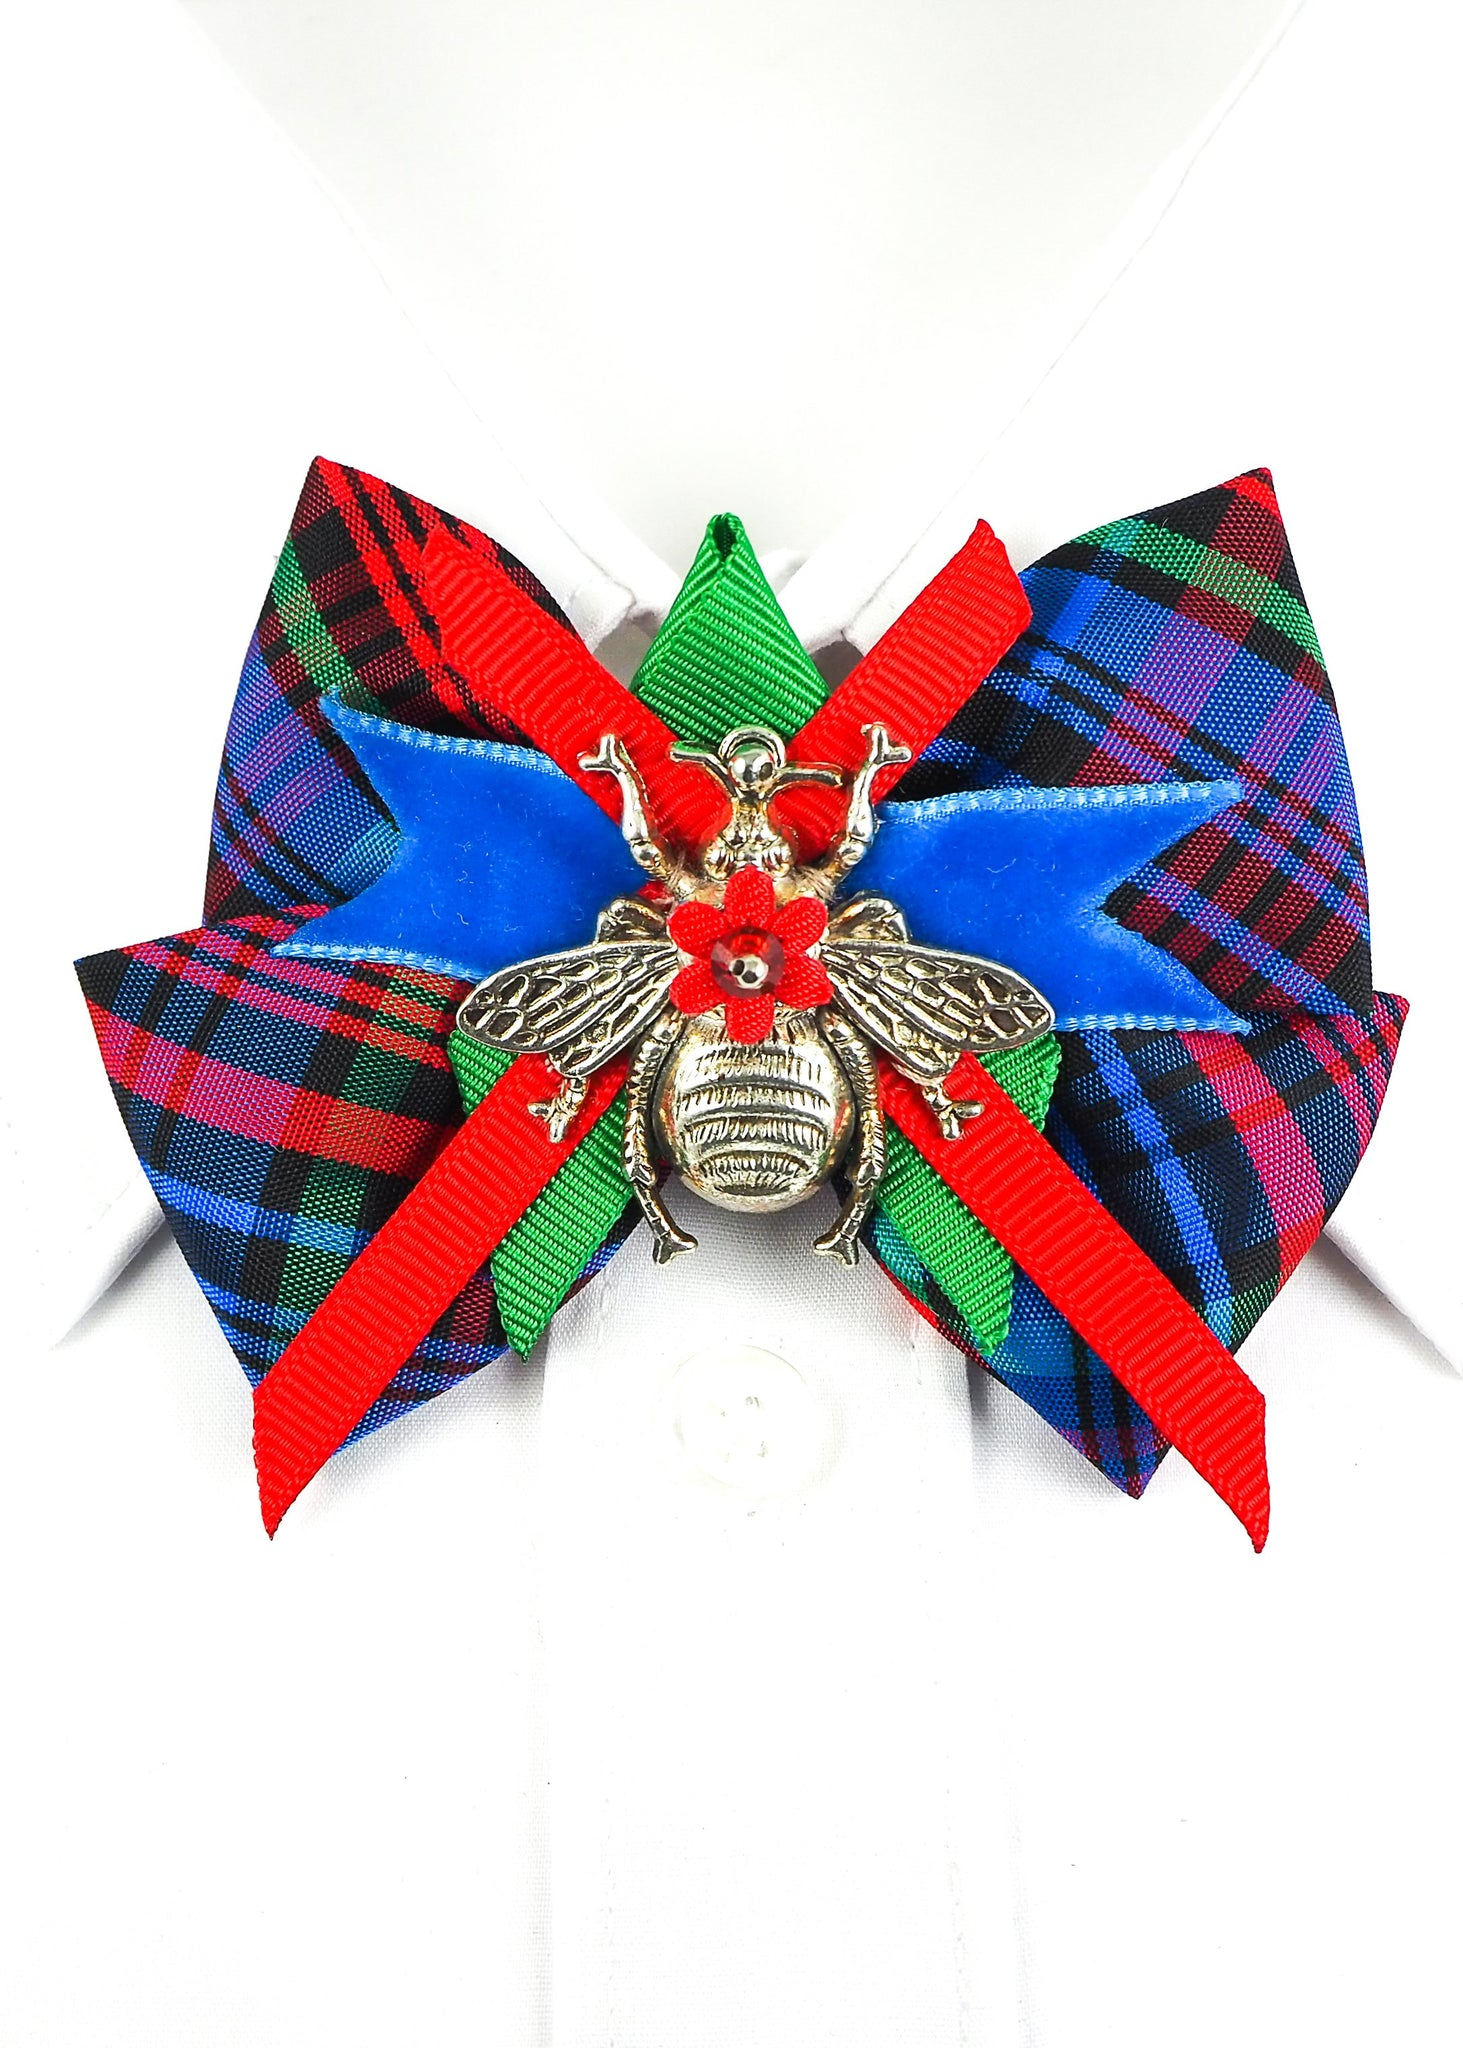 Bow Tie, Tie for wedding suite FESTIVE hopper tie Bow tie